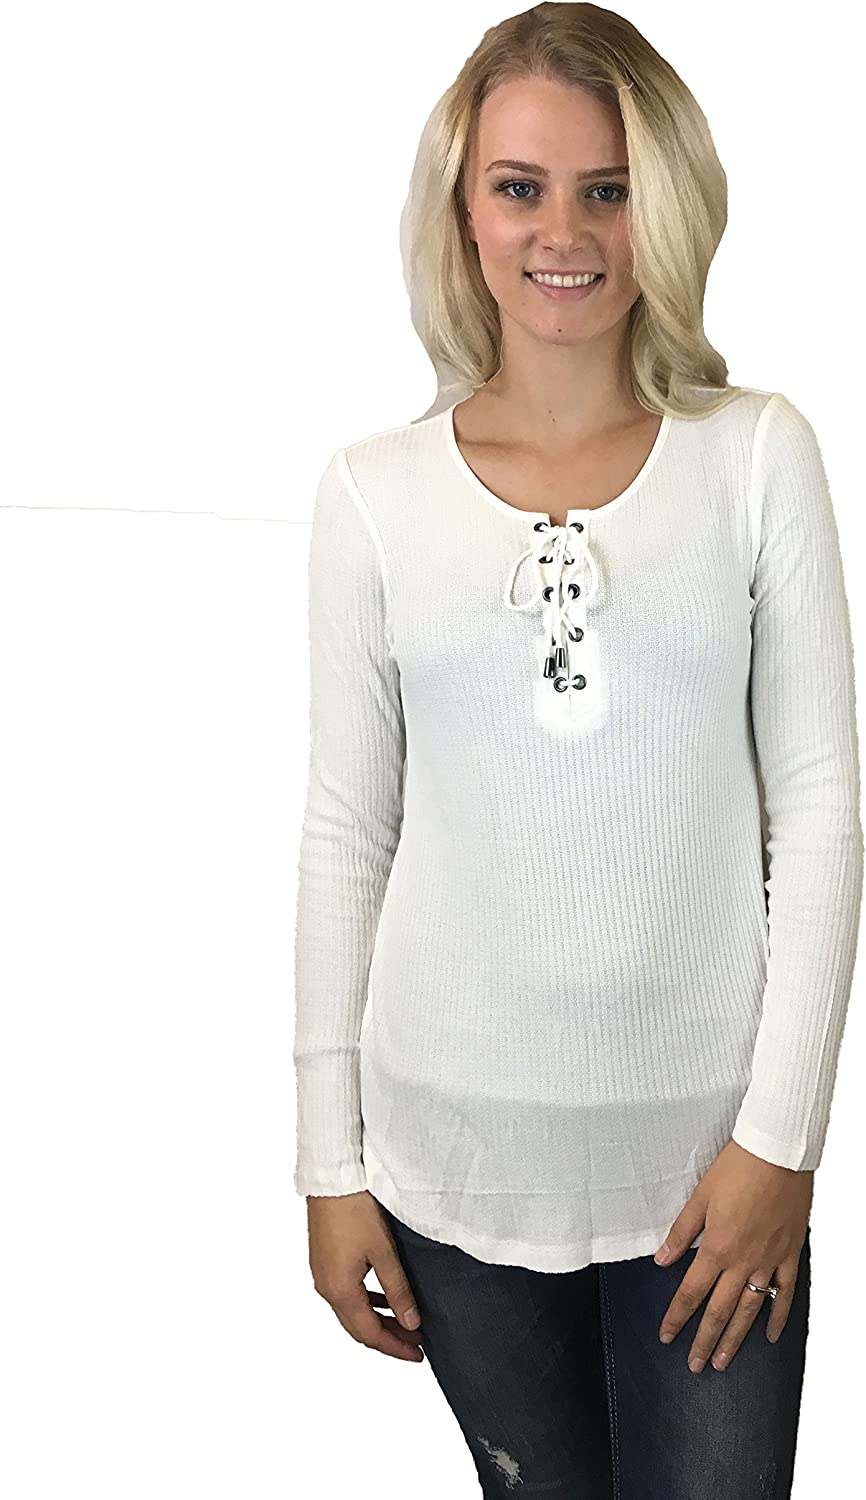 Tribal Womens Long Sleeve Rid Knit Top w Laceup Detail at Neck